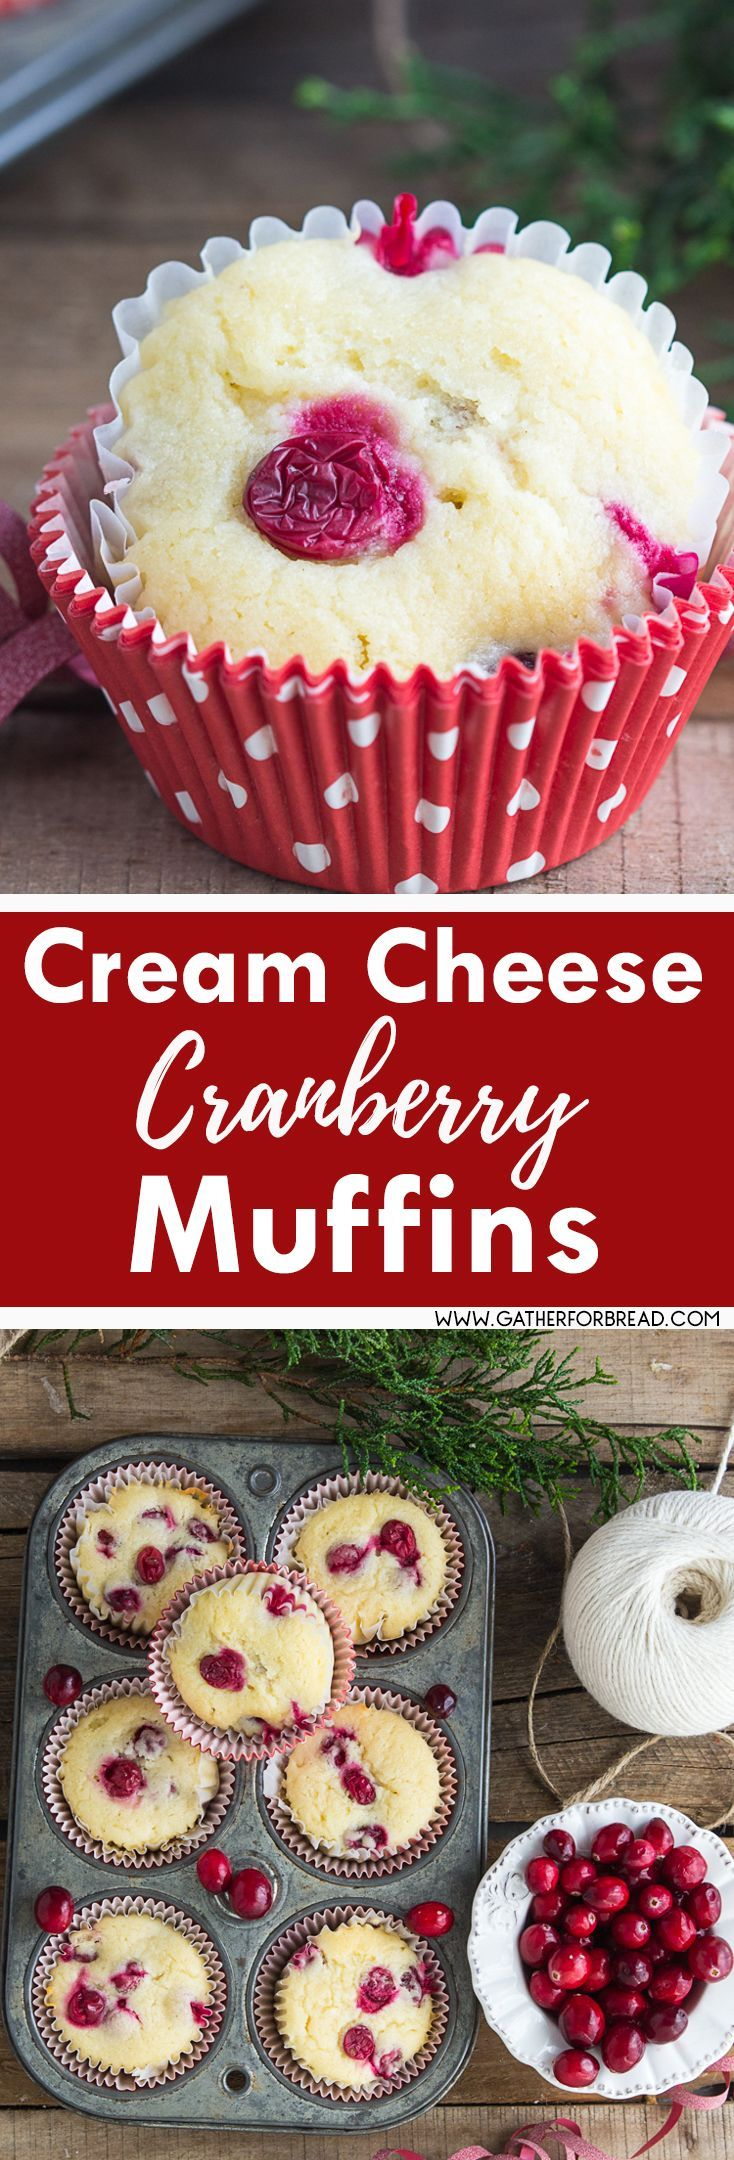 Cream Cheese Cranberry Muffins – Soft fruity cream cheese muffins made with fresh cranberries. Perfect for breakfast, brunch for Christmas and the holidays. SO DELISH!